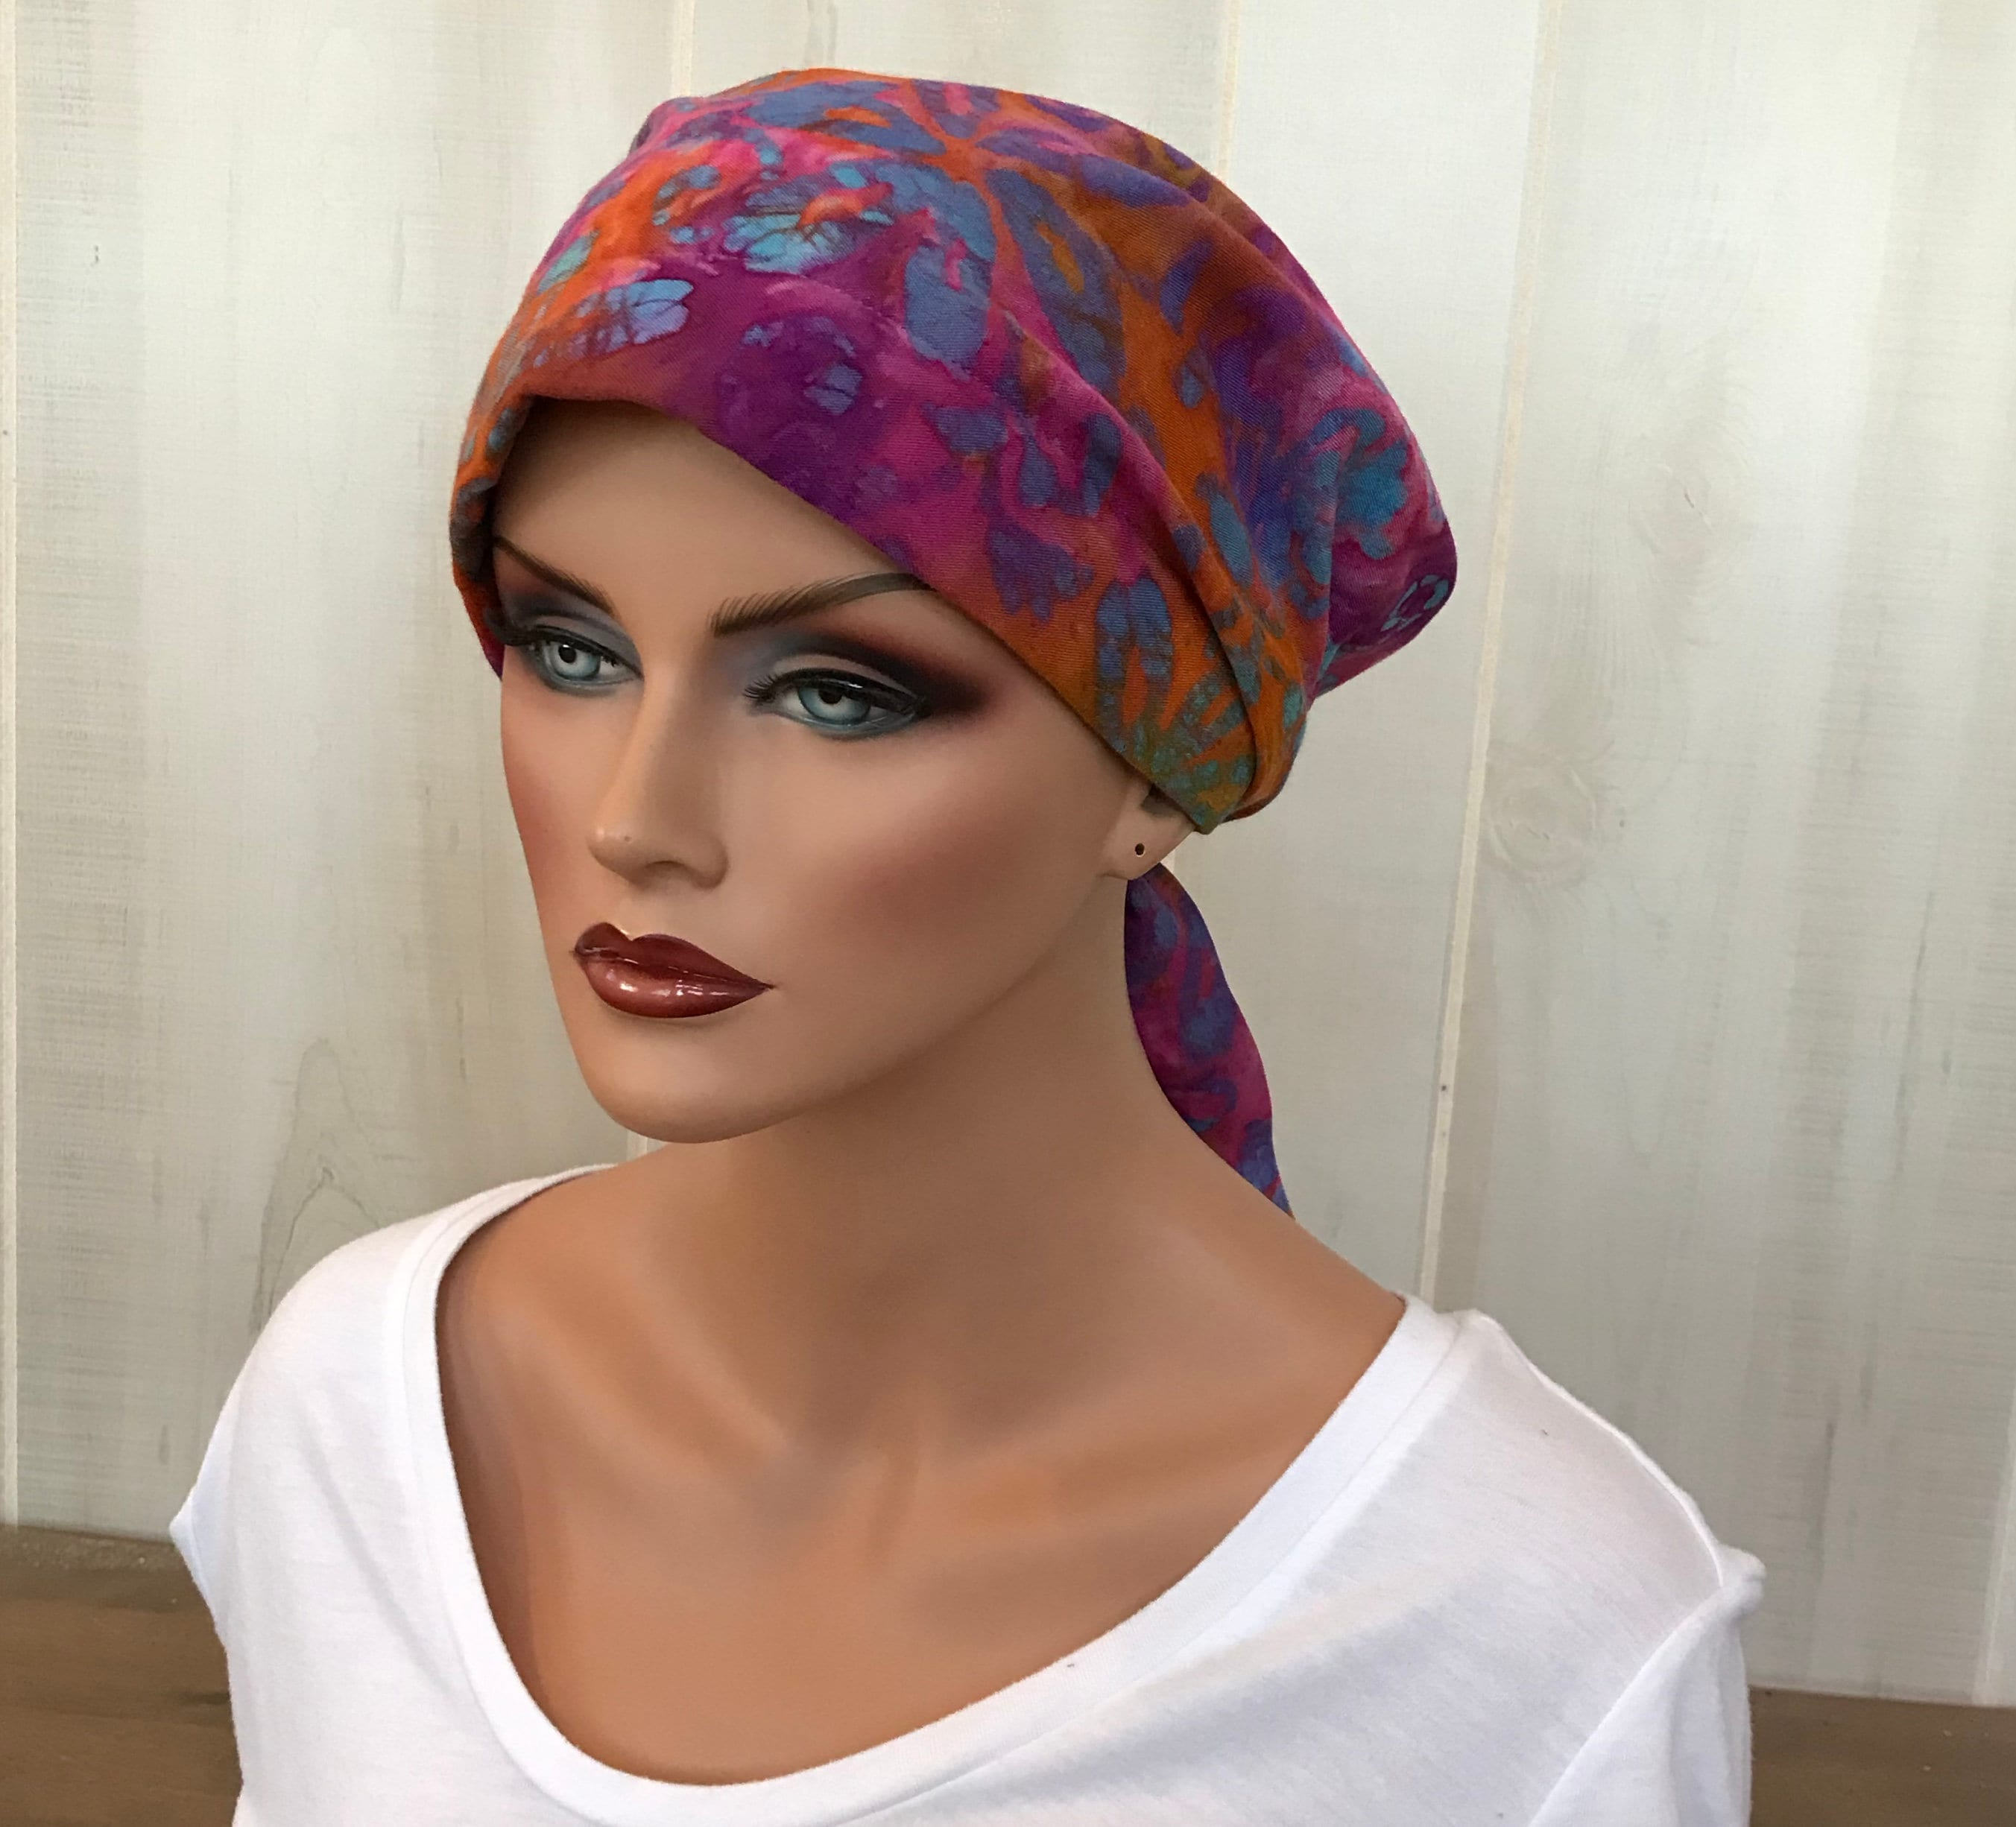 f2245b15991 Pre-Tied Head Scarf For Women With Hair Loss. Cancer Headwear ...